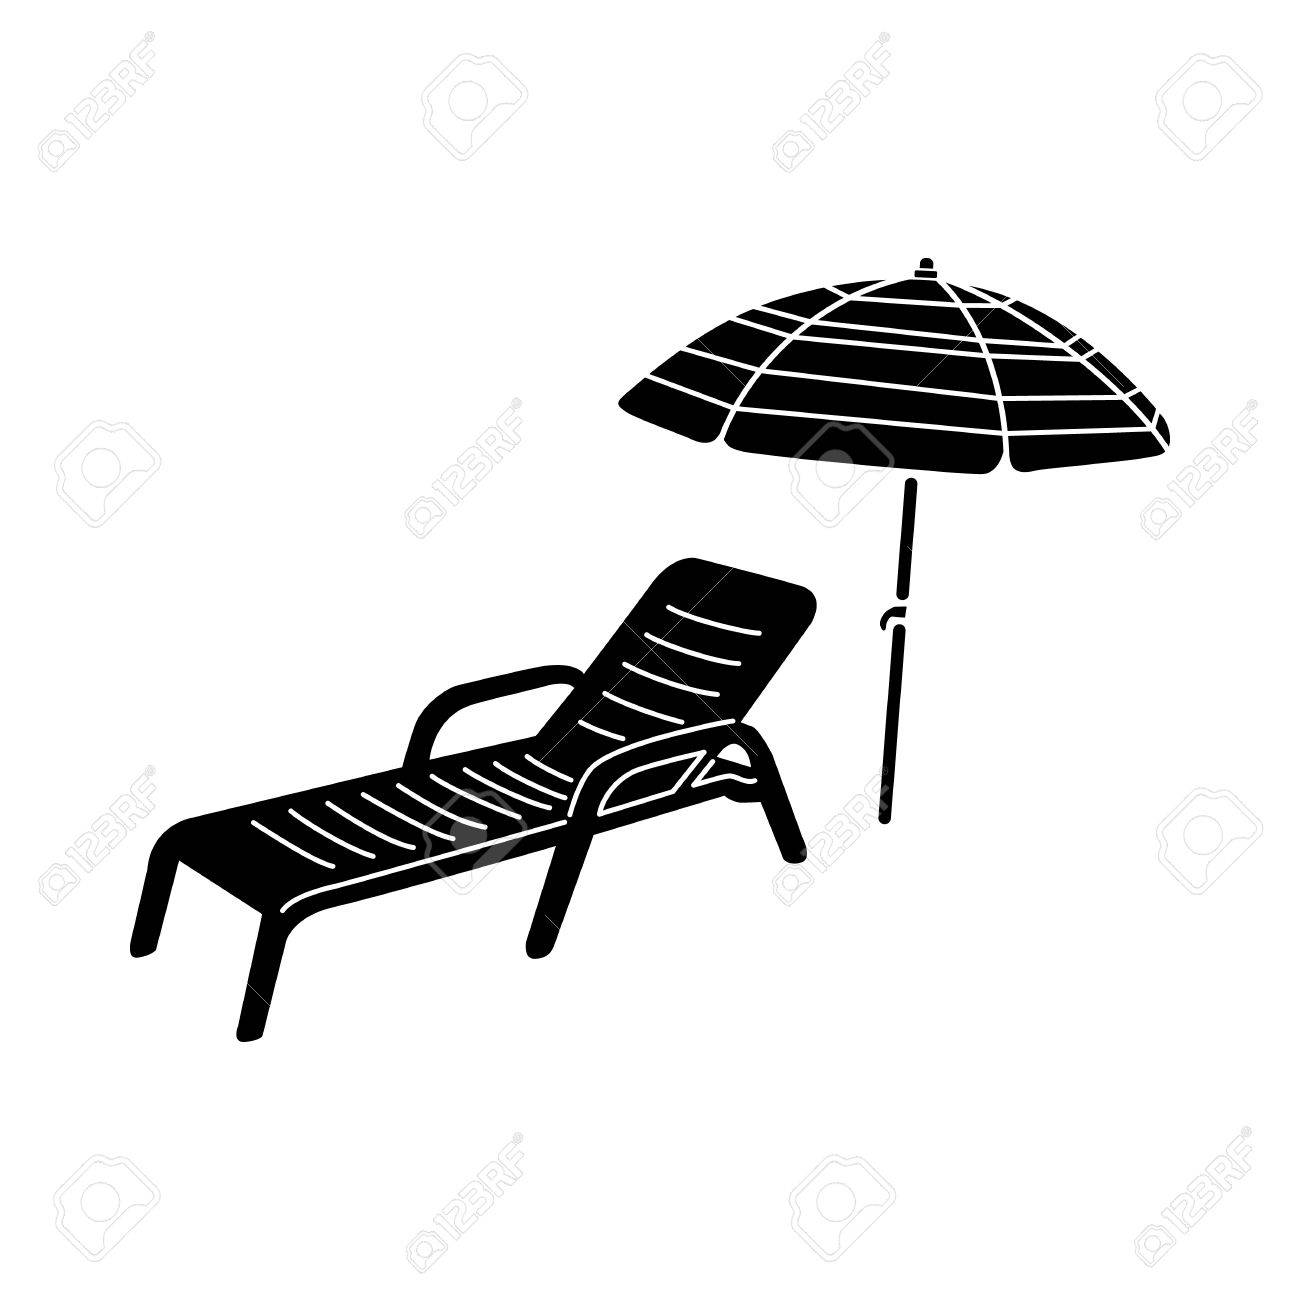 Sonnenliege Clipart Sun Lounger And Parasol Icon In Simple Style Isolated On White